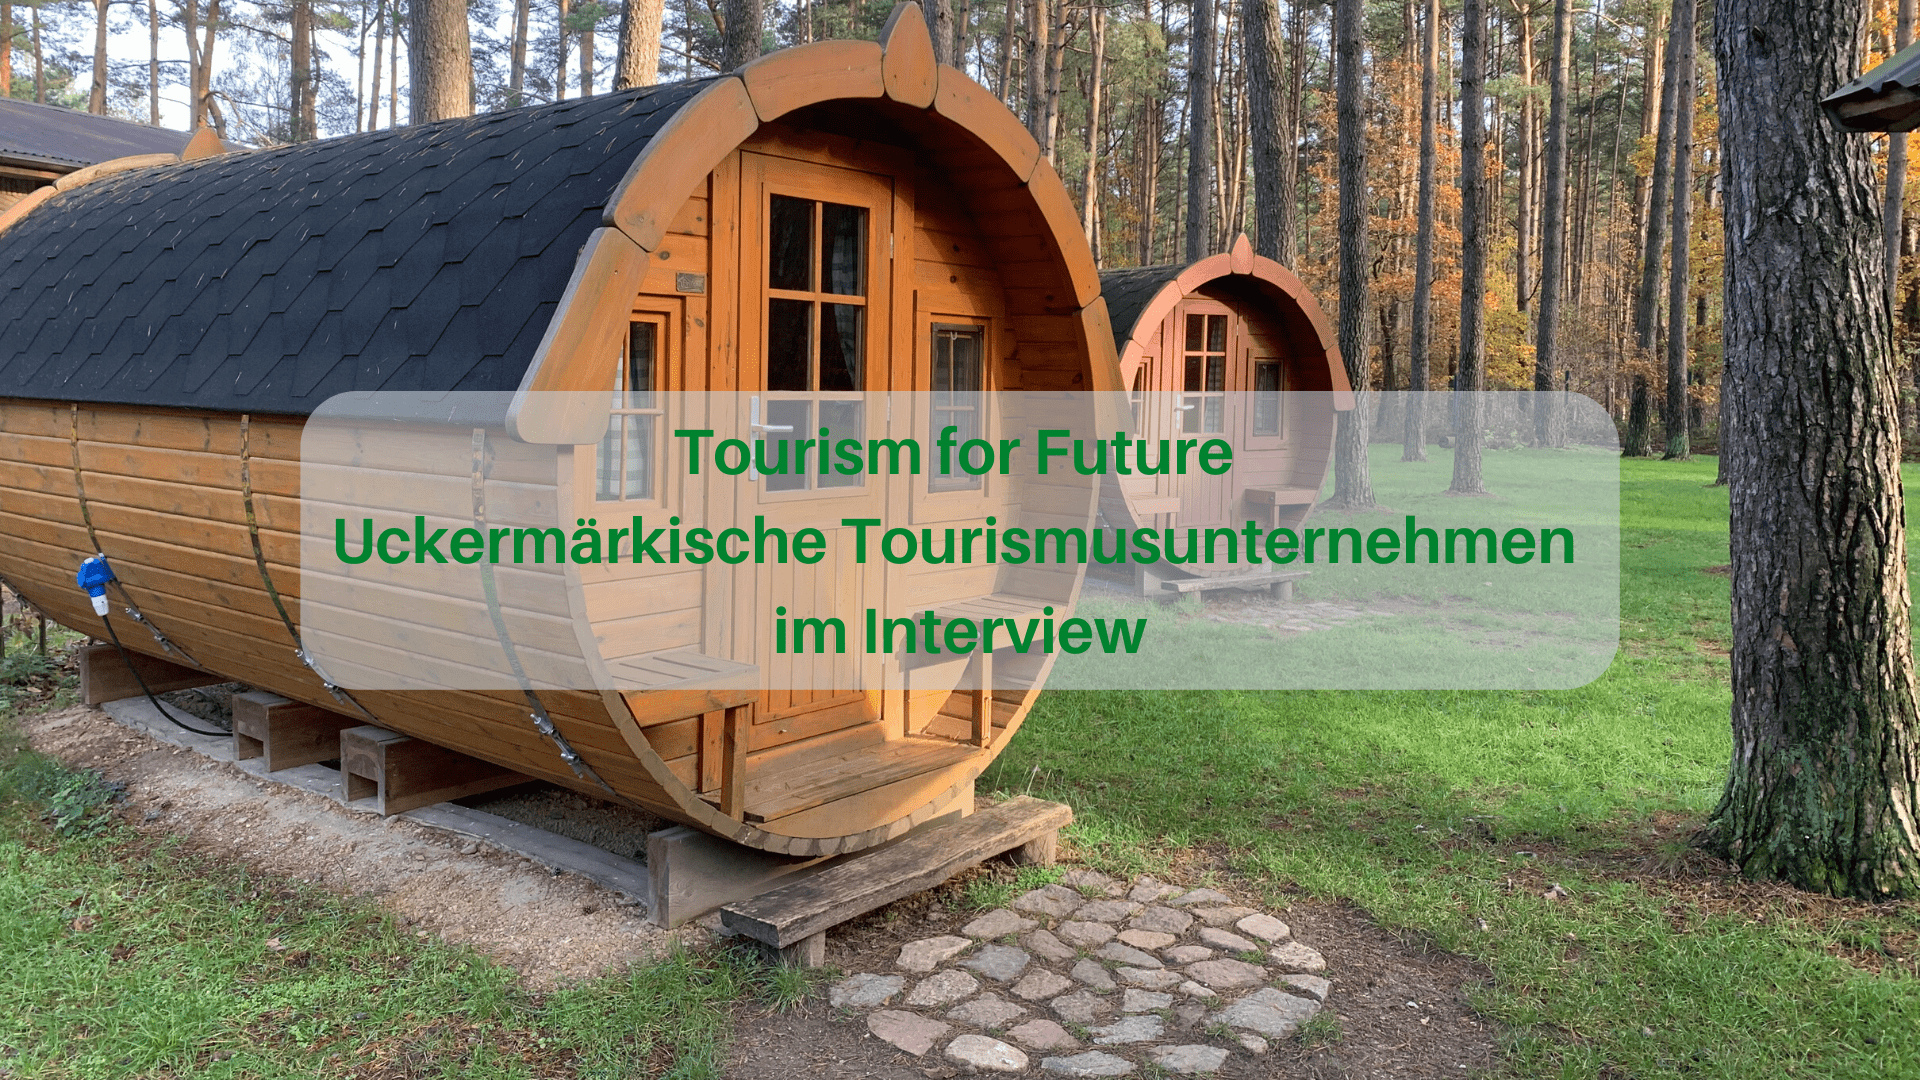 Artikelbild Campingplatz am Dreetzsee - Tourism for Future